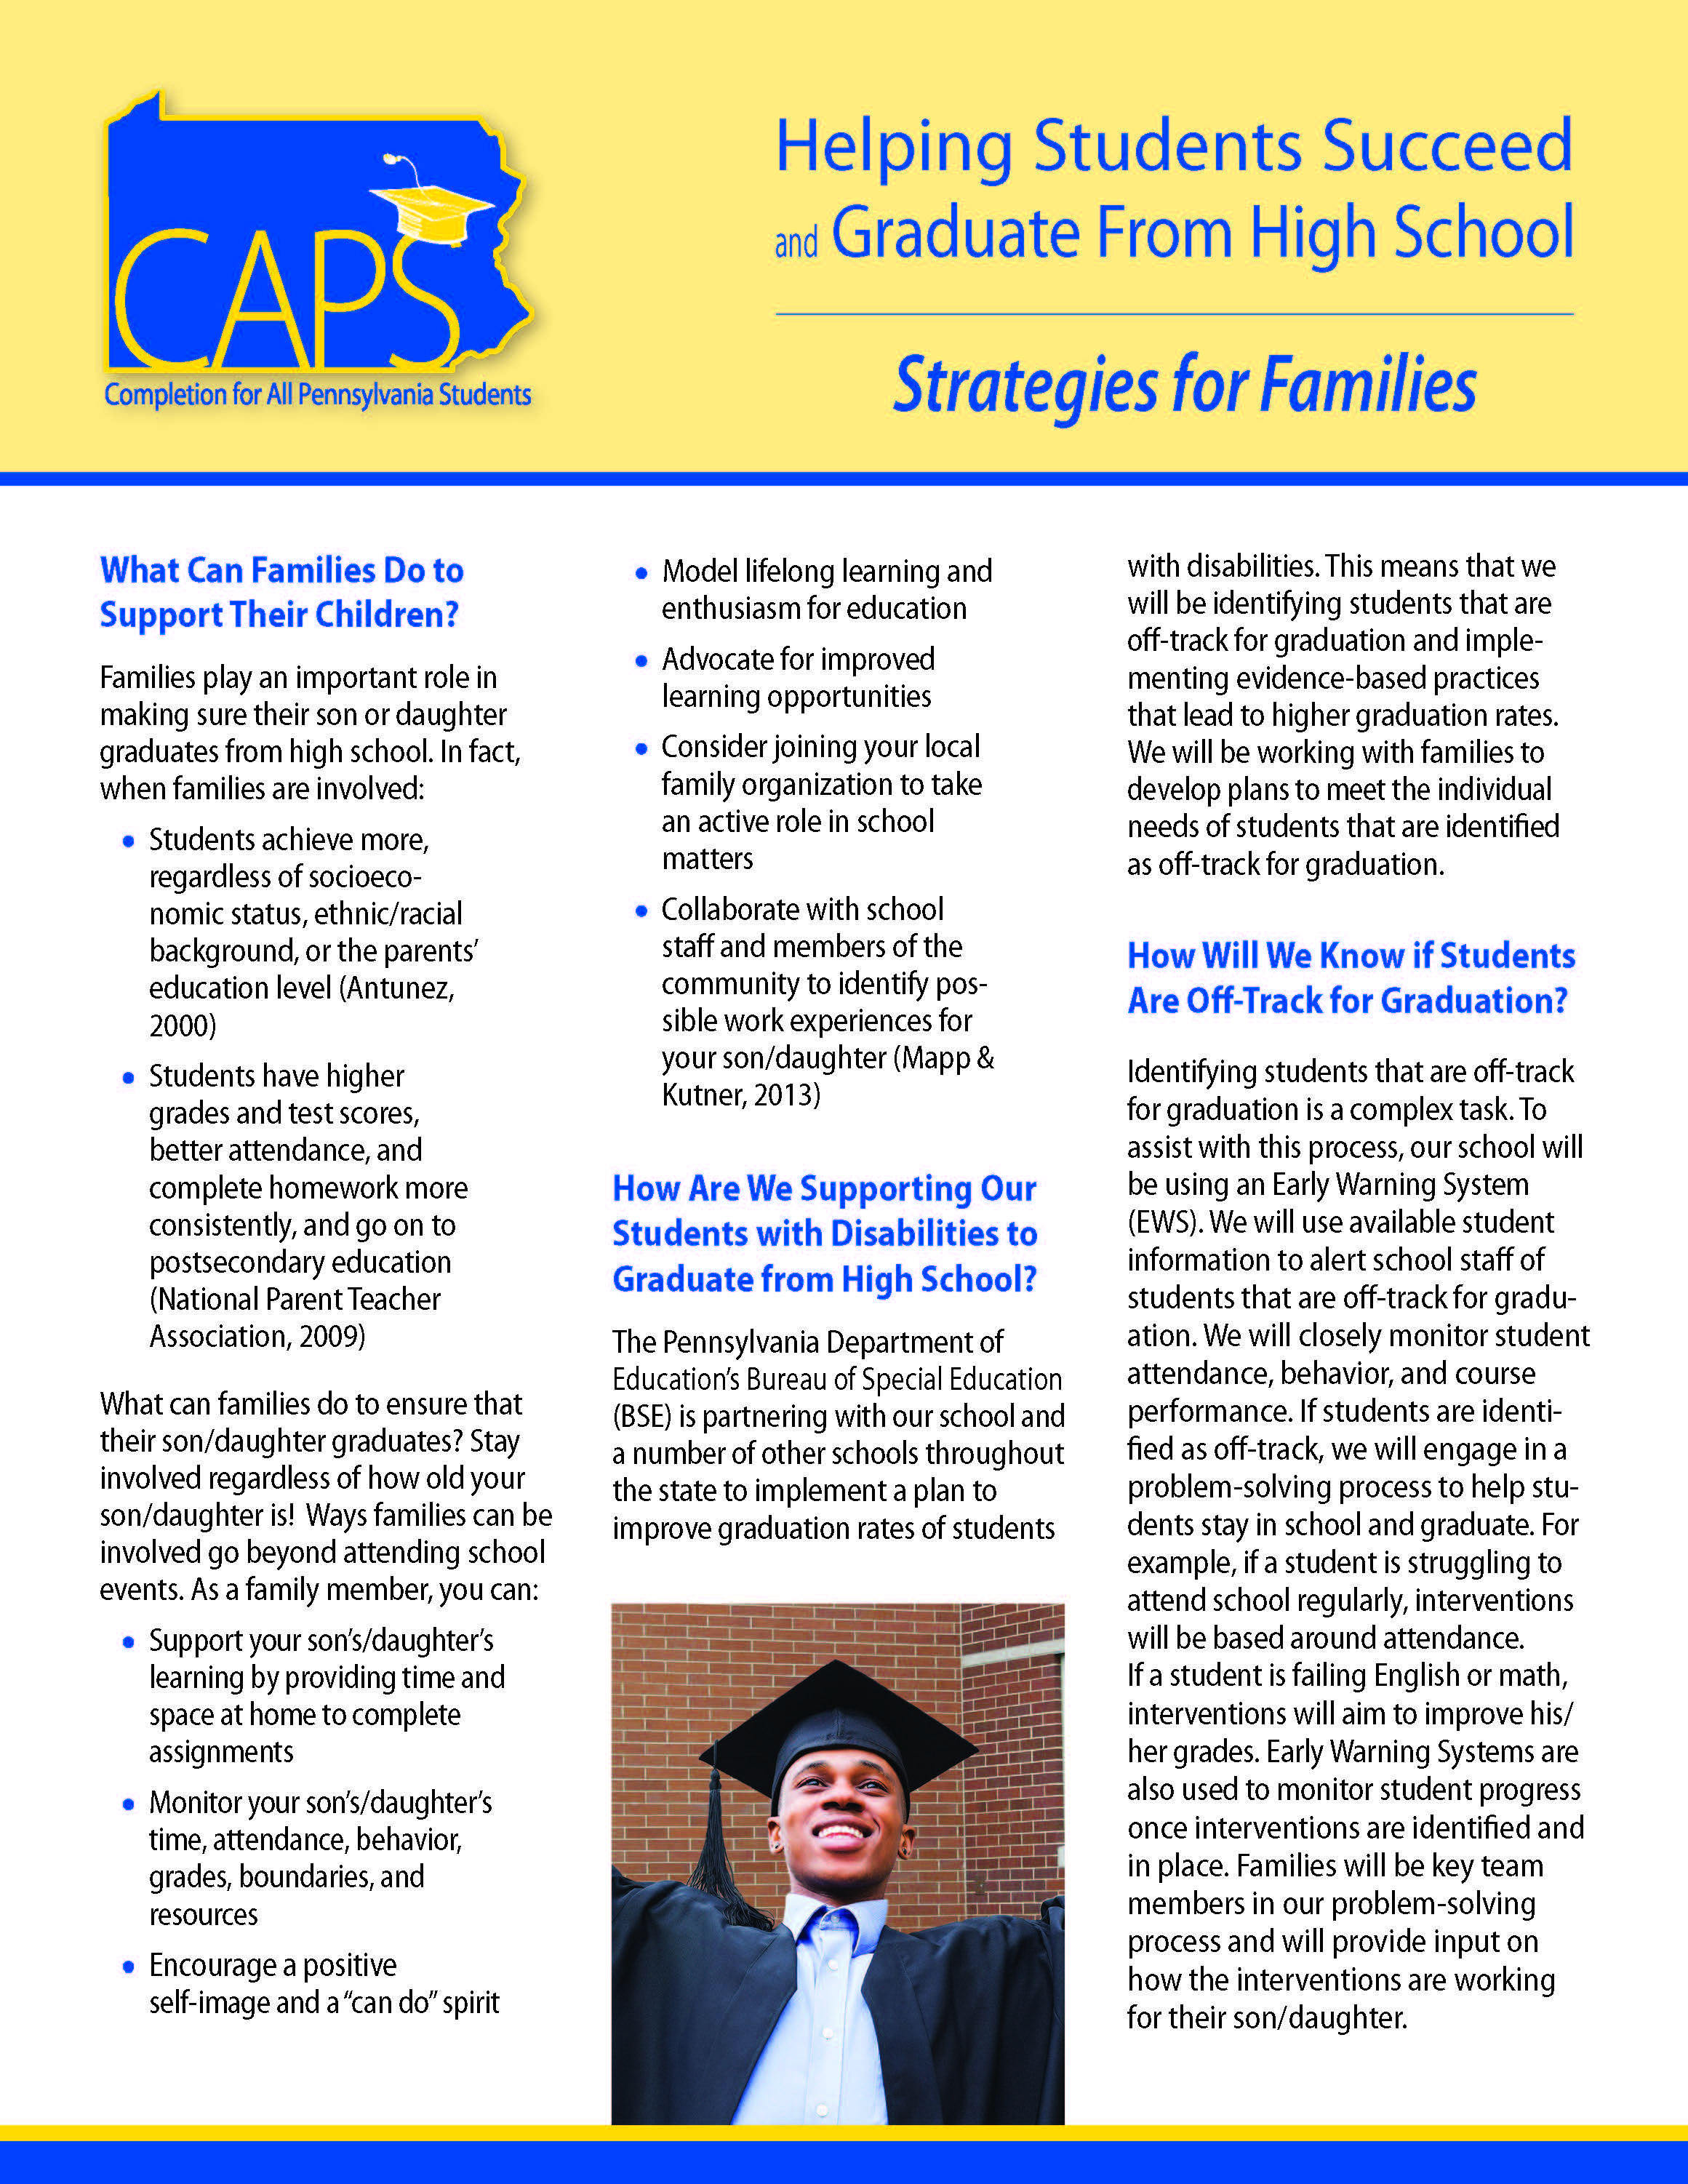 CAPS: Helping Students Succeed and Graduate From High School - Strategies for Families